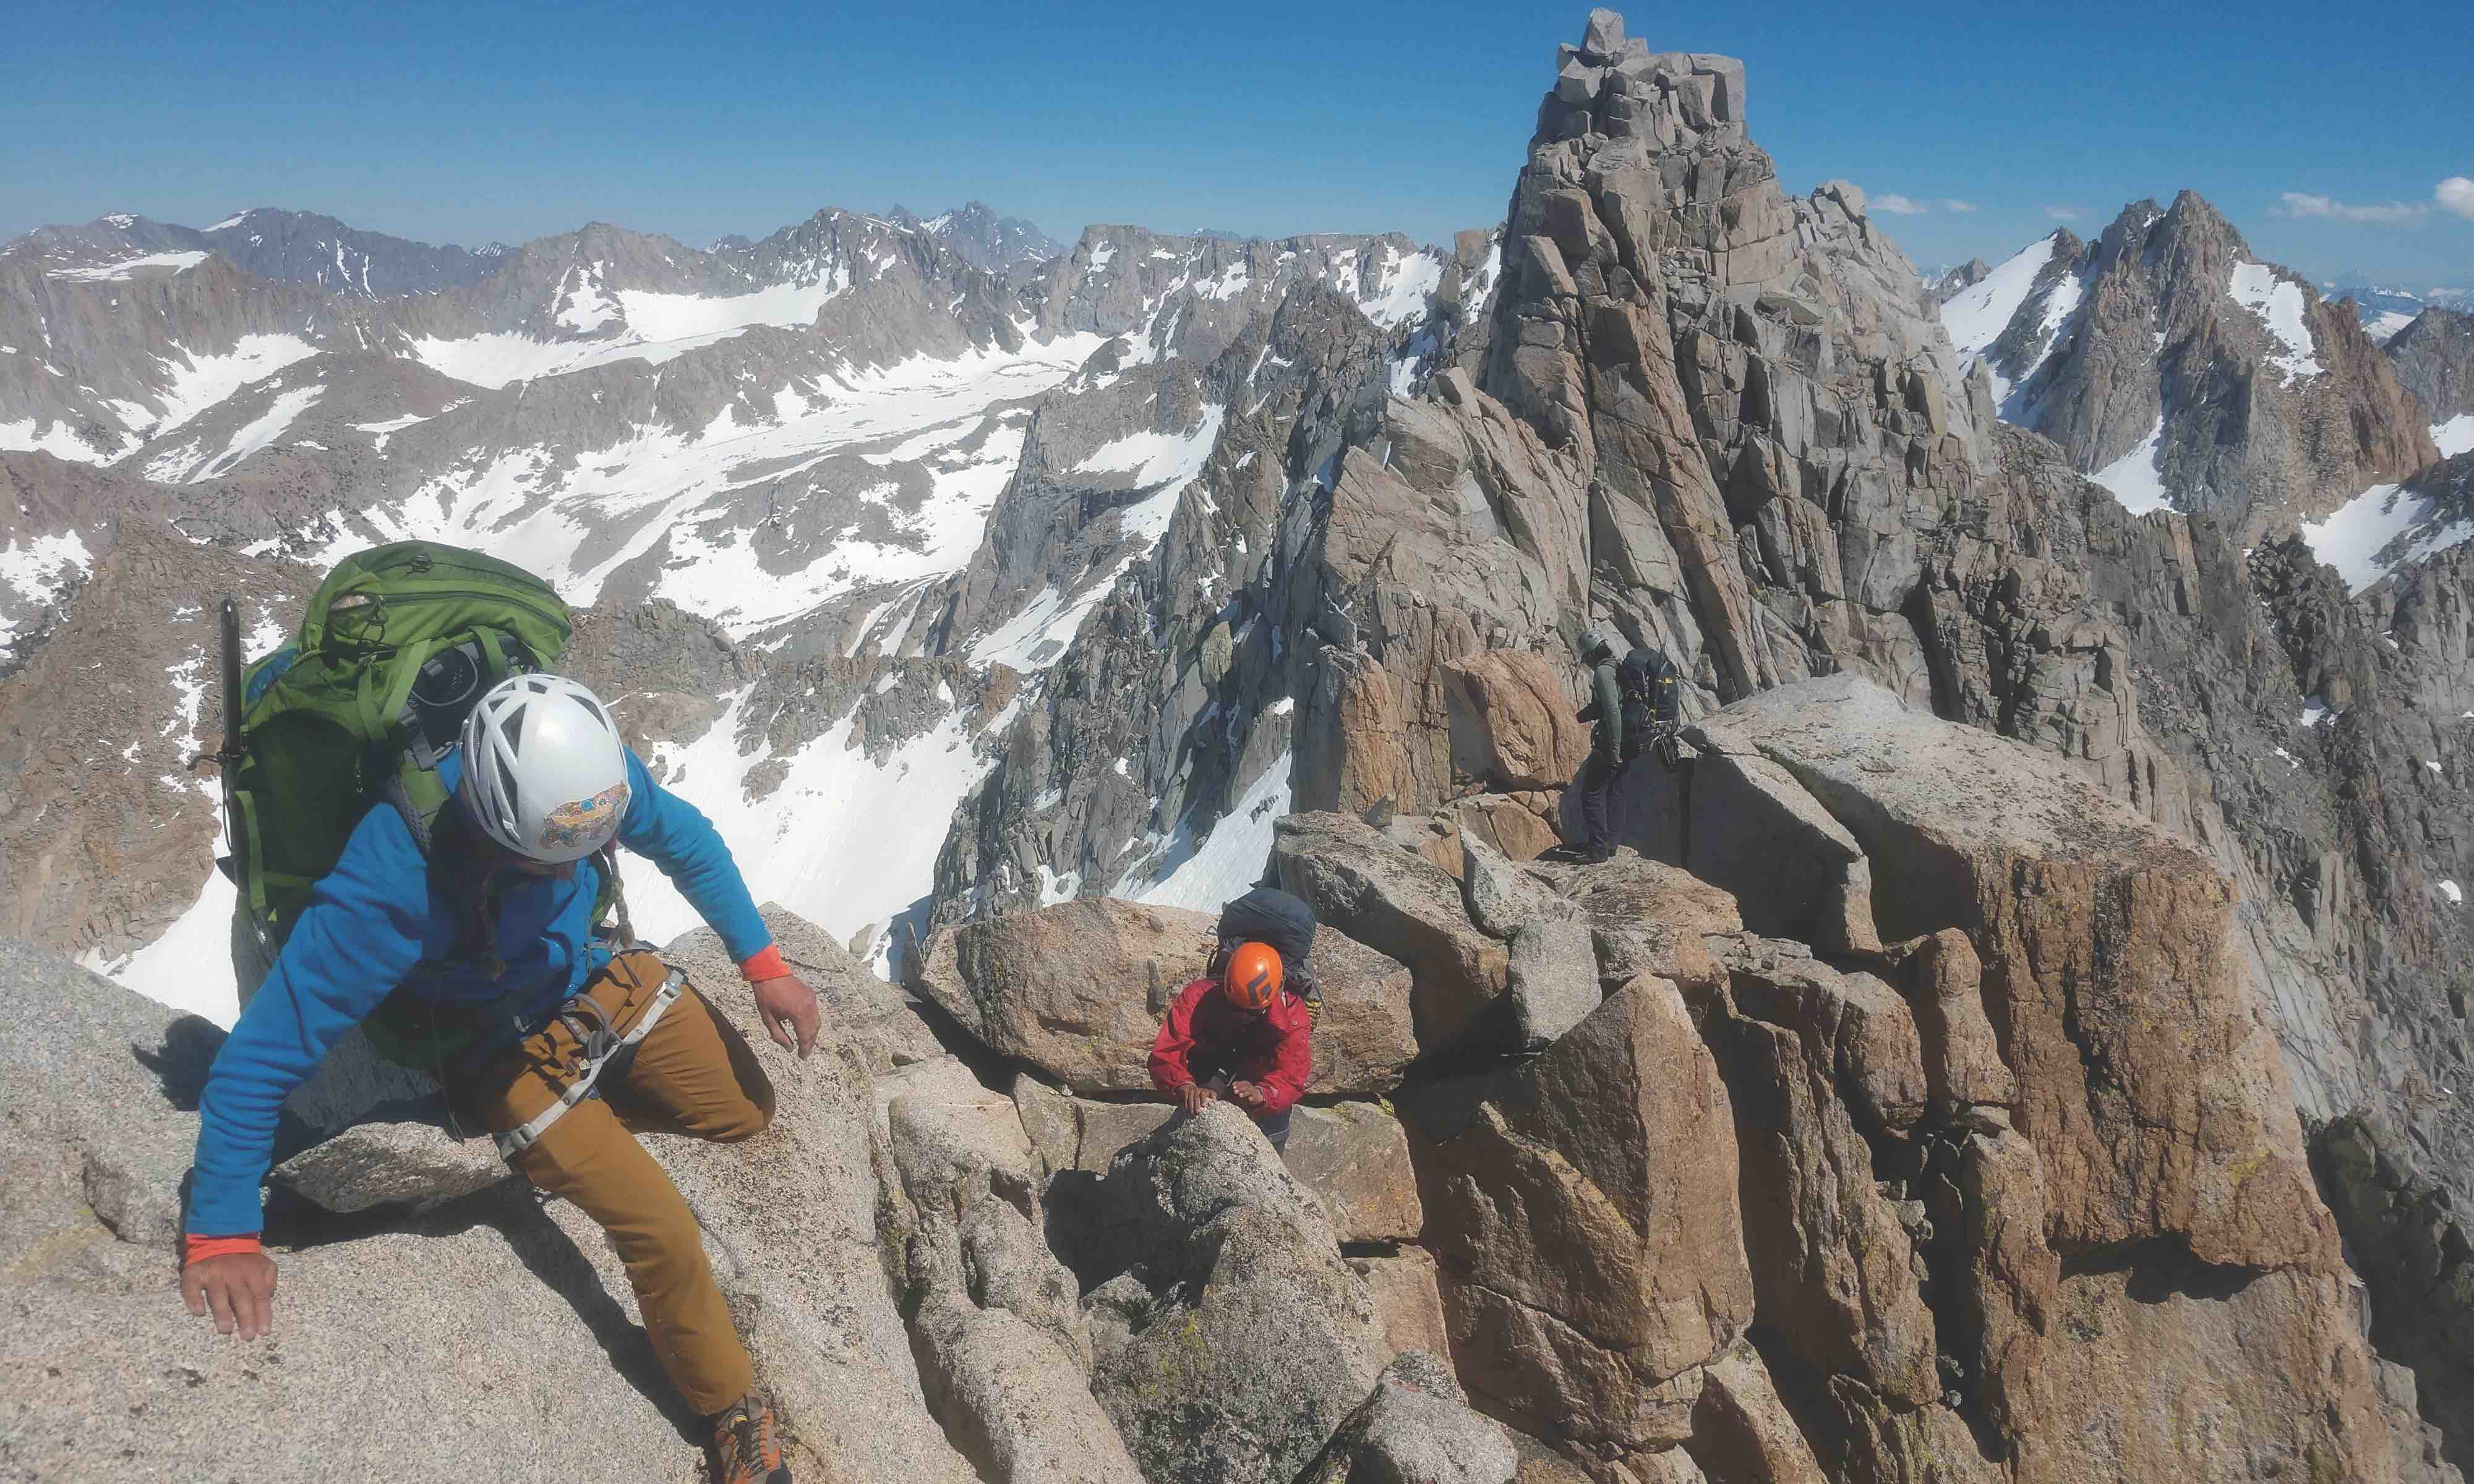 Accident Prevention: Old Tat Breaks On Evolution Traverse - Rock and Ice